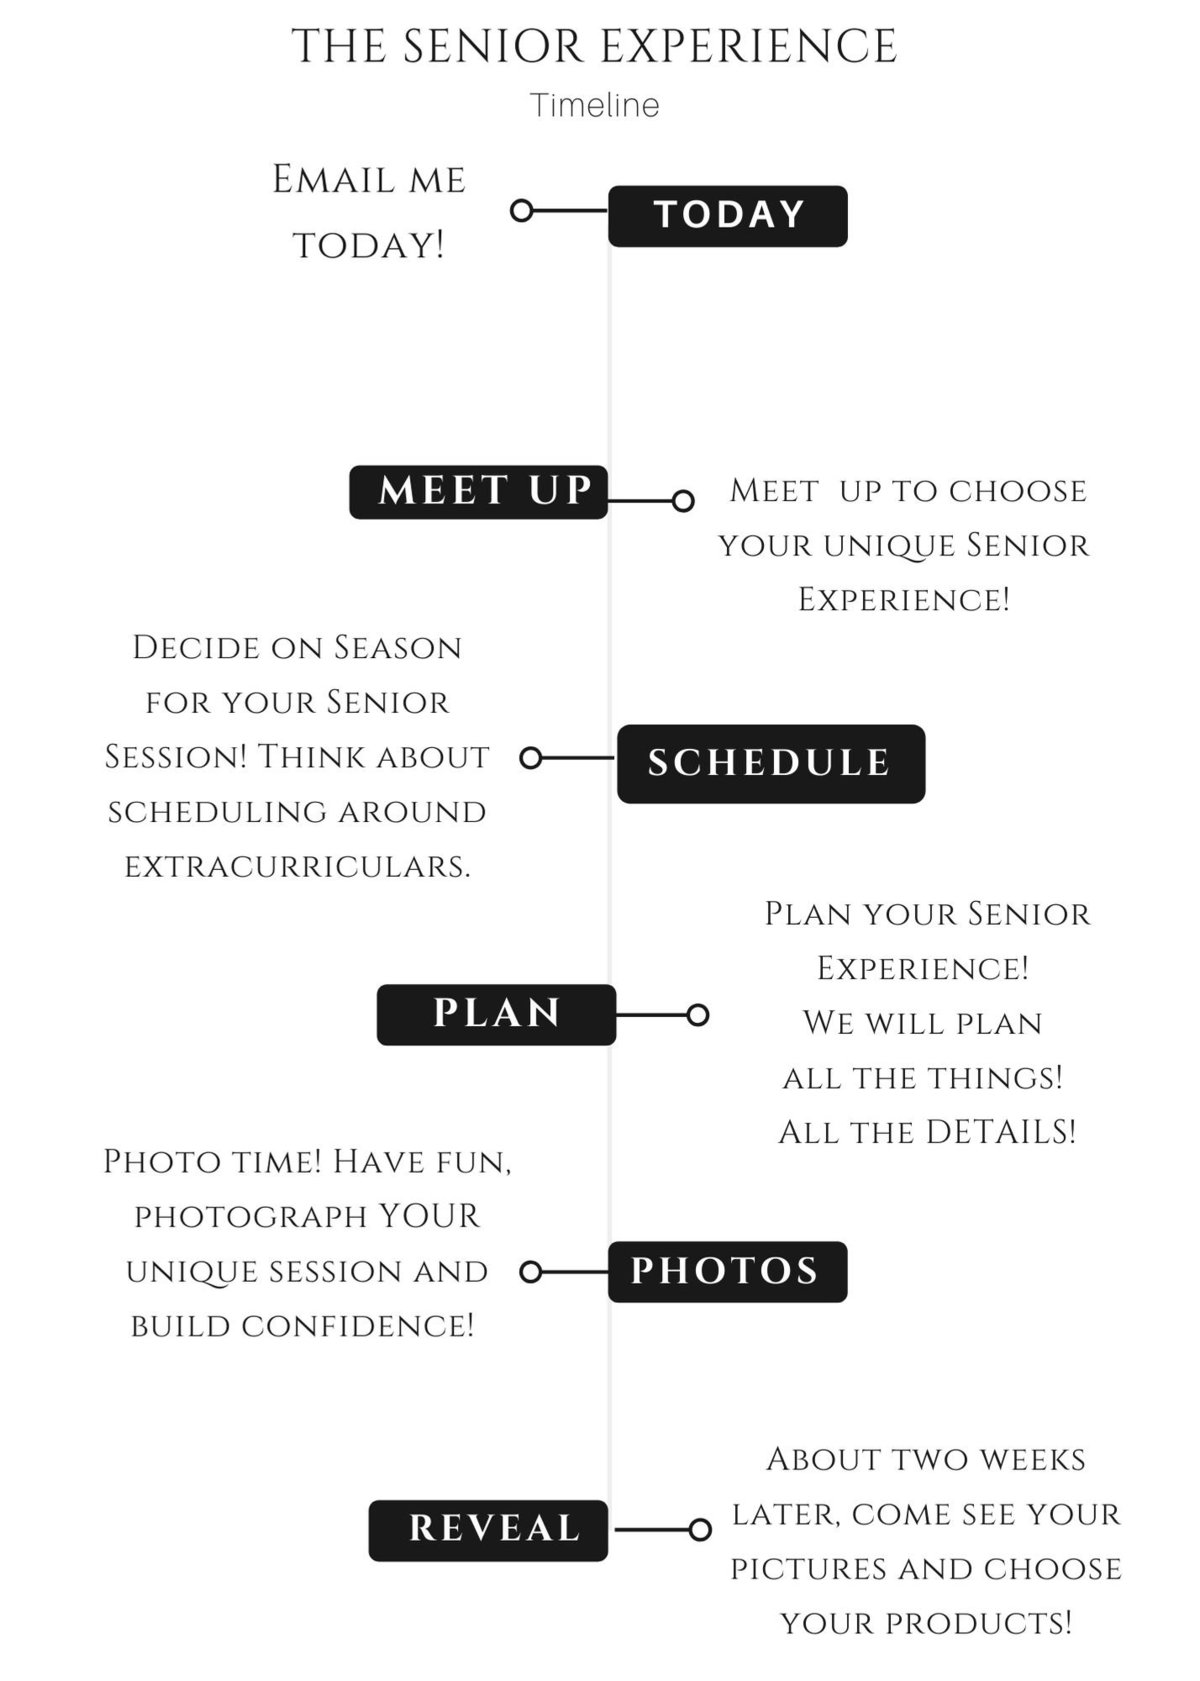 timeline showing the senior experience with jamie lynette photography